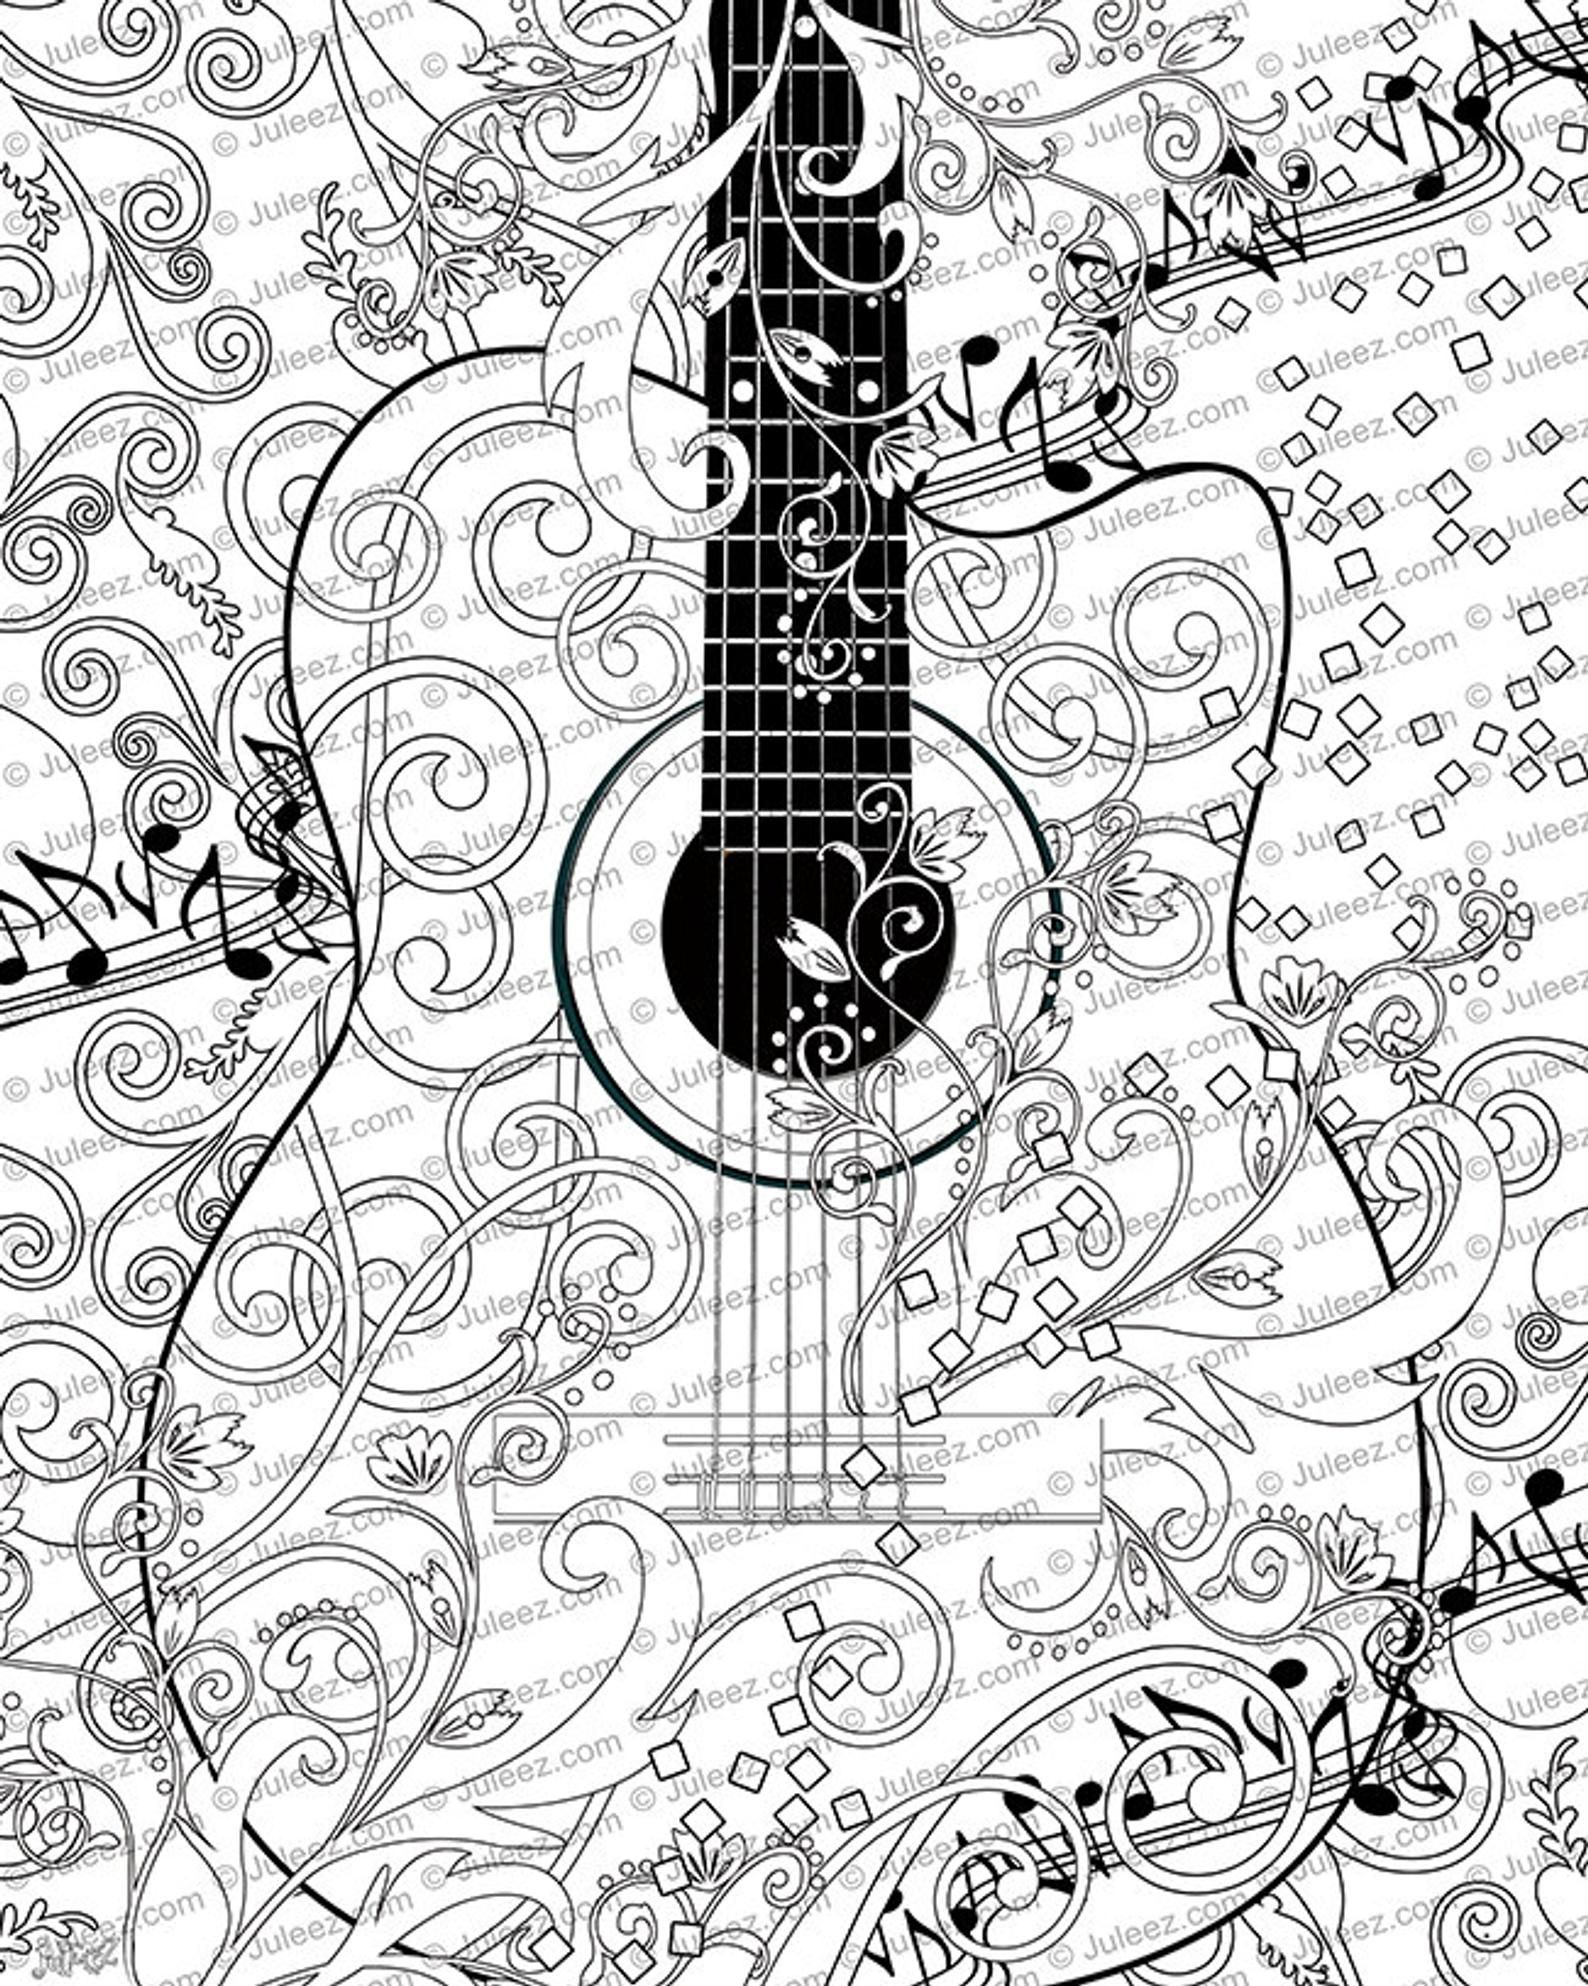 Printable Music Coloring Pages Inspirational Music Kids Original Coloring Page Relax Color Free Printable In 2020 Music Coloring Music Coloring Sheets Elementary Music